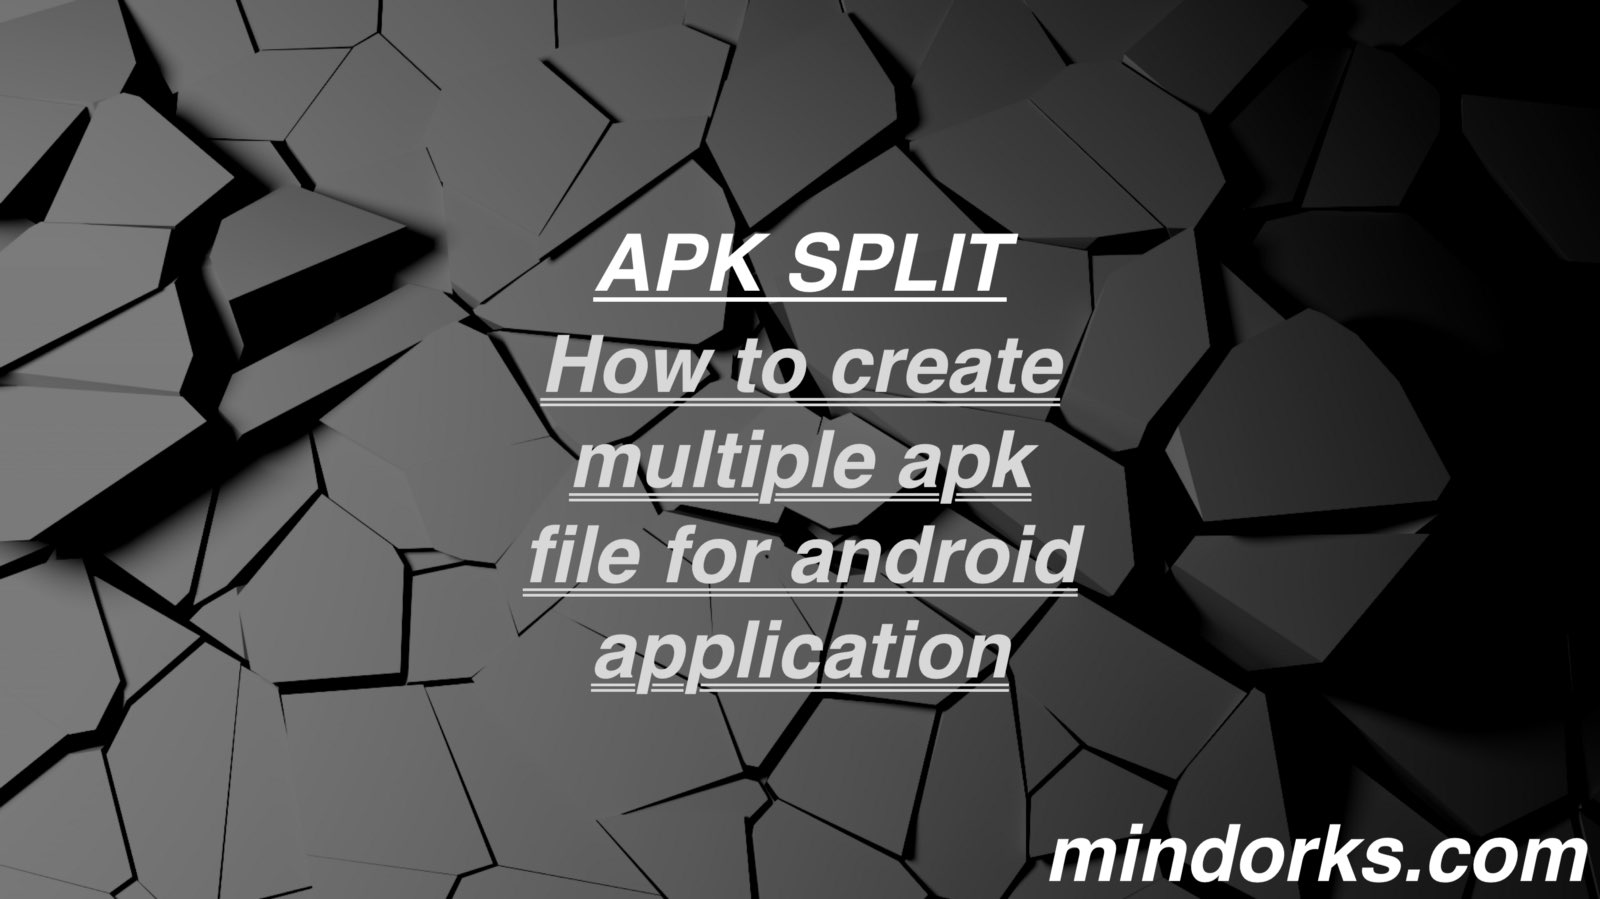 How to create multiple apk files for android application